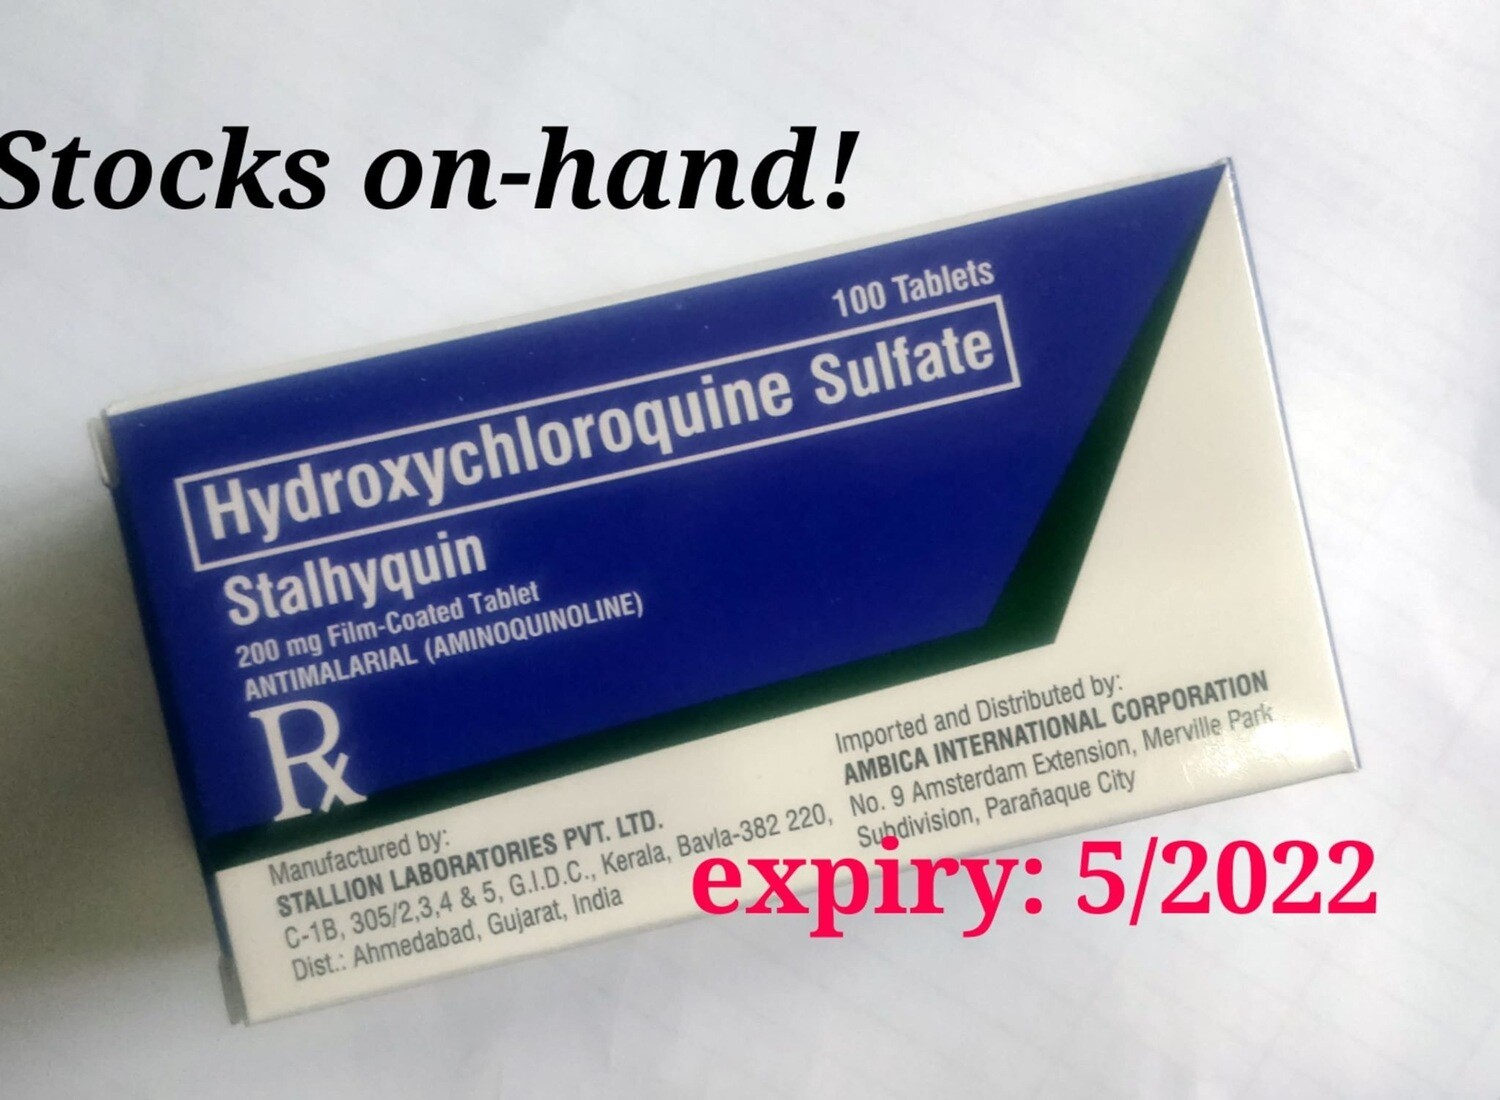 Hydroxychloroquine 200mg Tablet x 1's